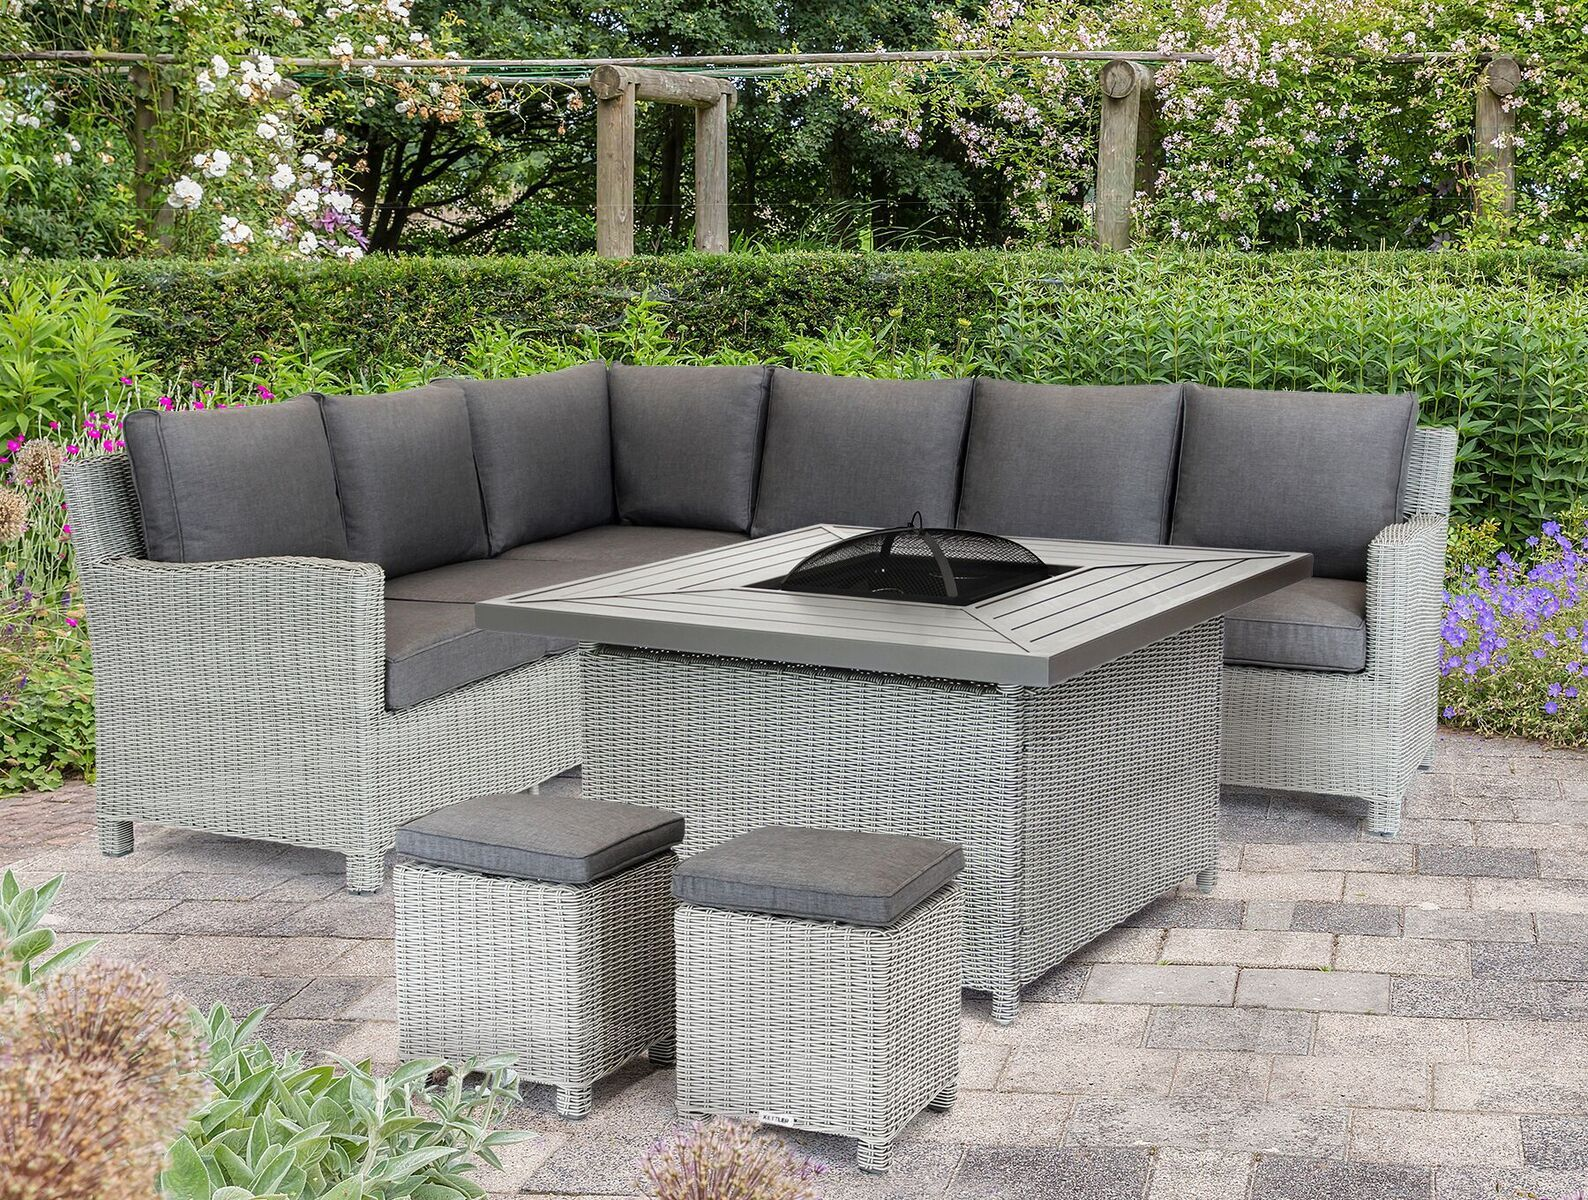 Be The Envy Of Others With This Beautiful Furniture Set Complete With Fire Pit By Palma Frosts Palm Corner Sofa Set Rattan Corner Sofa Outdoor Furniture Sets